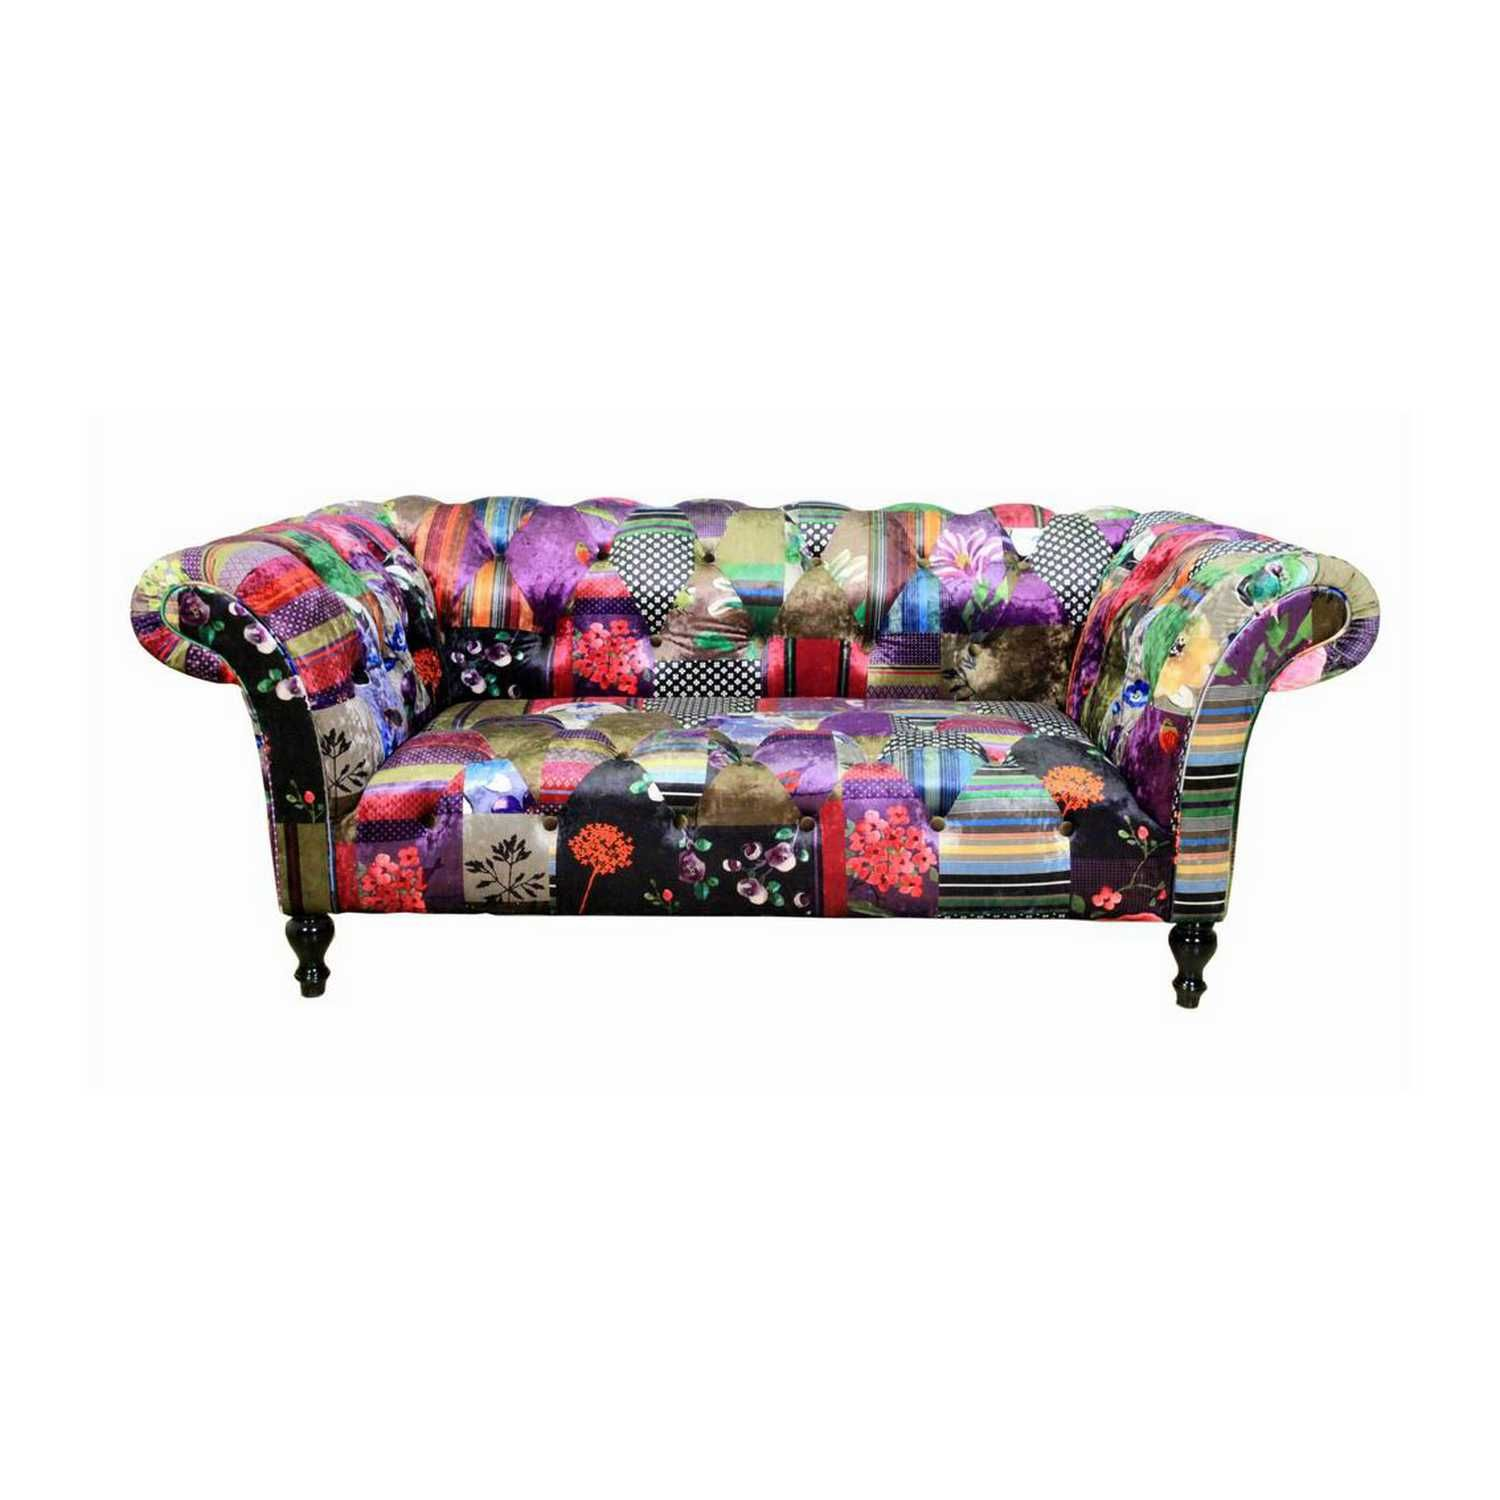 Patchwork Sofa Modica Patchwork Sofa Furniture The Range Home